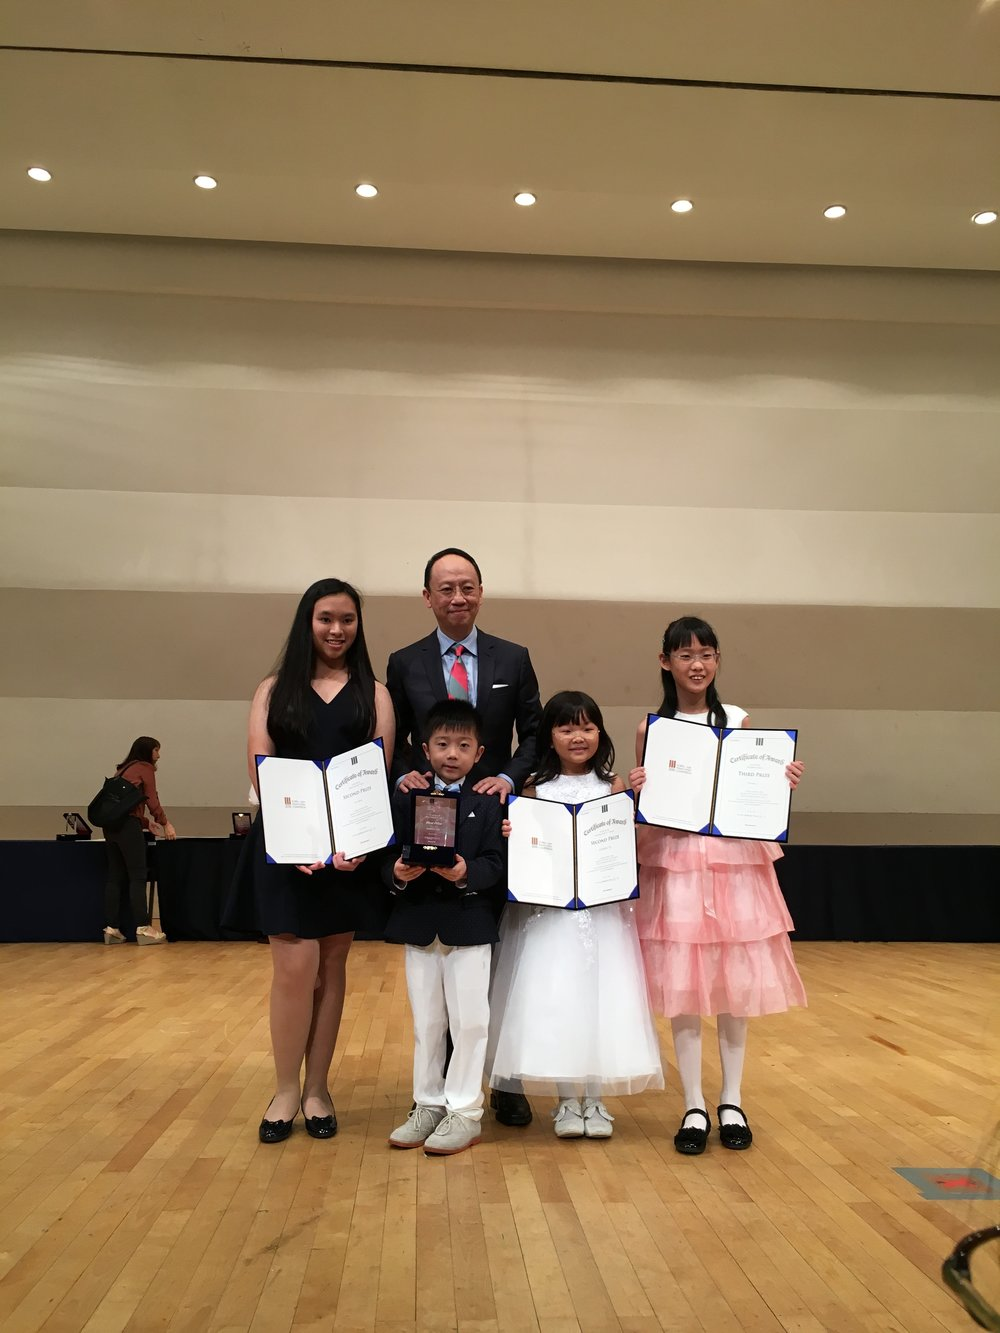 With my four prize-winning students, (from left) Jovi Koh, Cao Junwei, Yu Junqing & Vivan Li